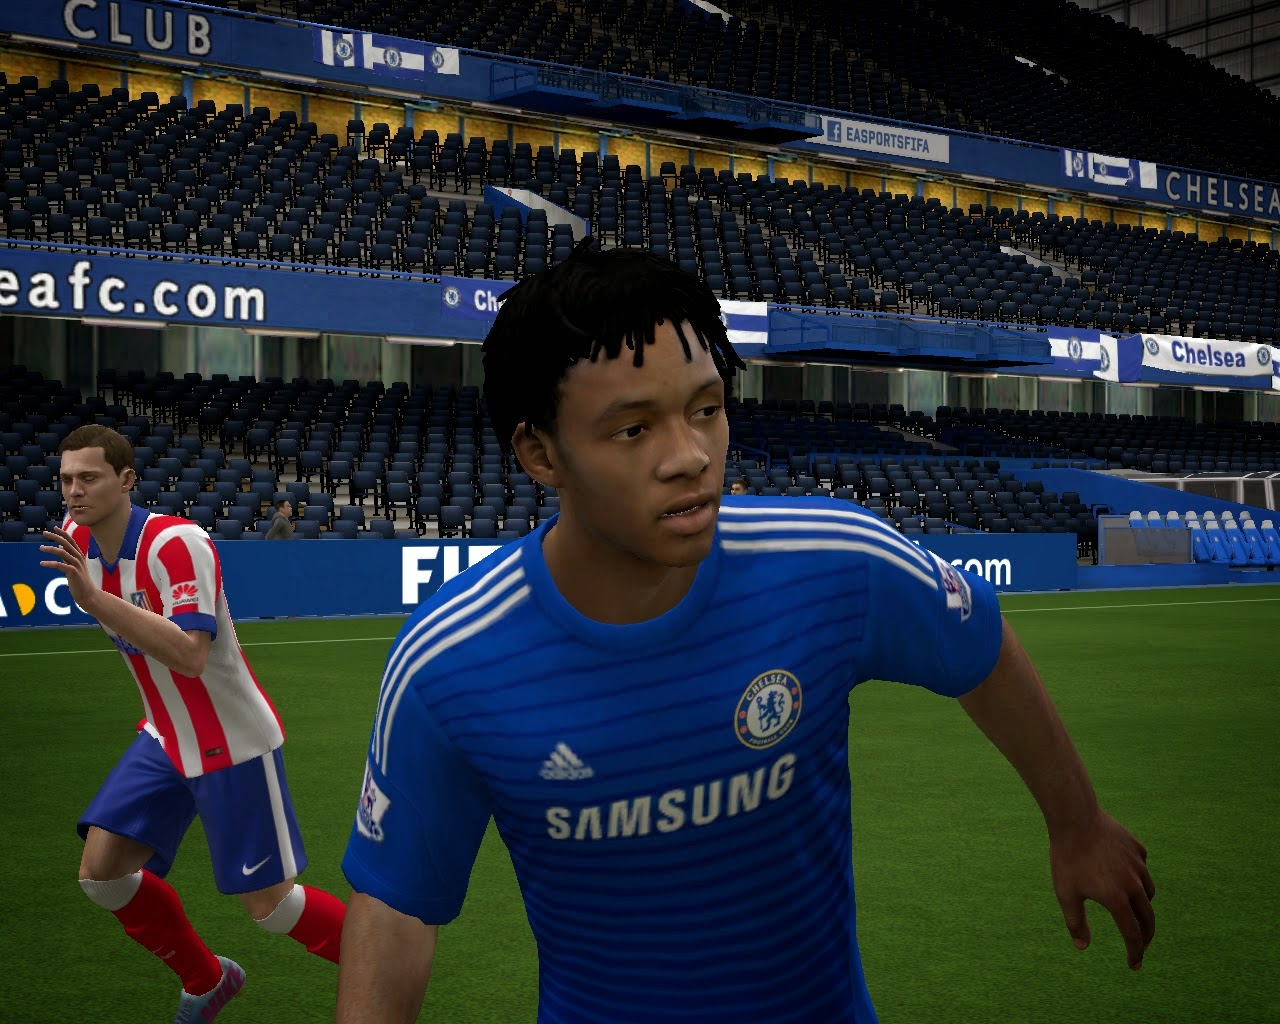 fifa 14 for windows 10 free download torrent